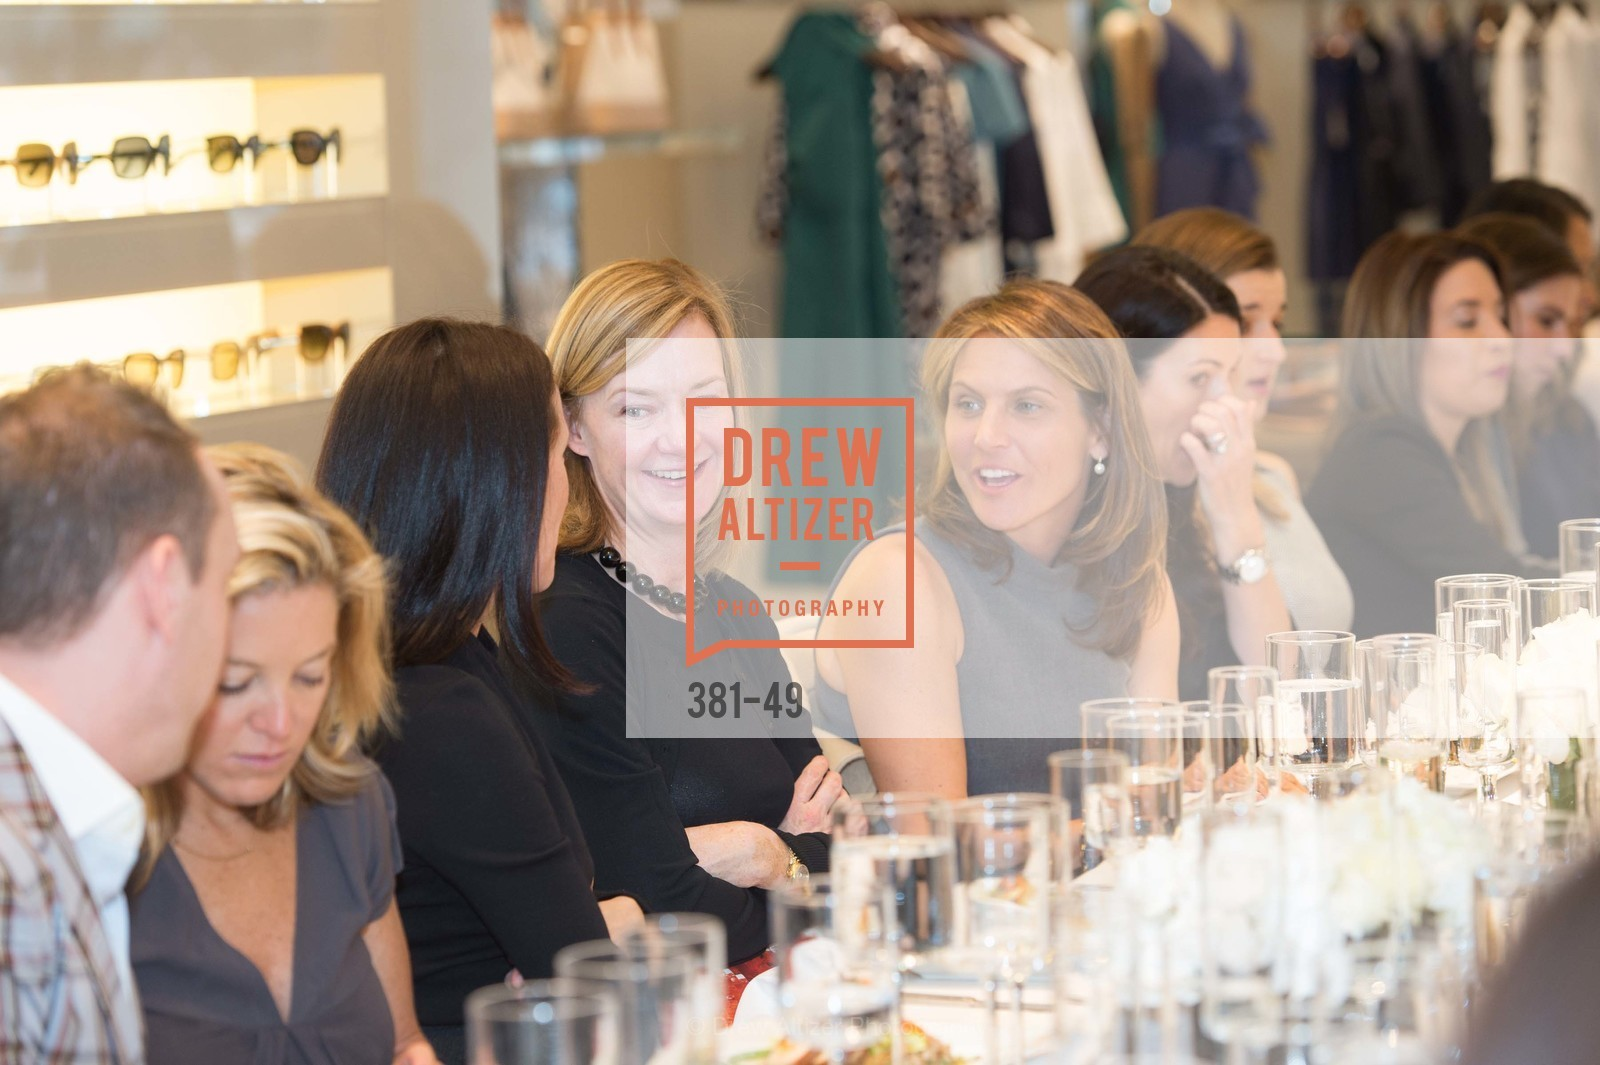 Katie Paige, Lee Sadrian, Luncheon Hosted by Max Mara, Max Mara. 175 Post St, San Francisco, CA 94108, April 21st, 2015,Drew Altizer, Drew Altizer Photography, full-service agency, private events, San Francisco photographer, photographer california